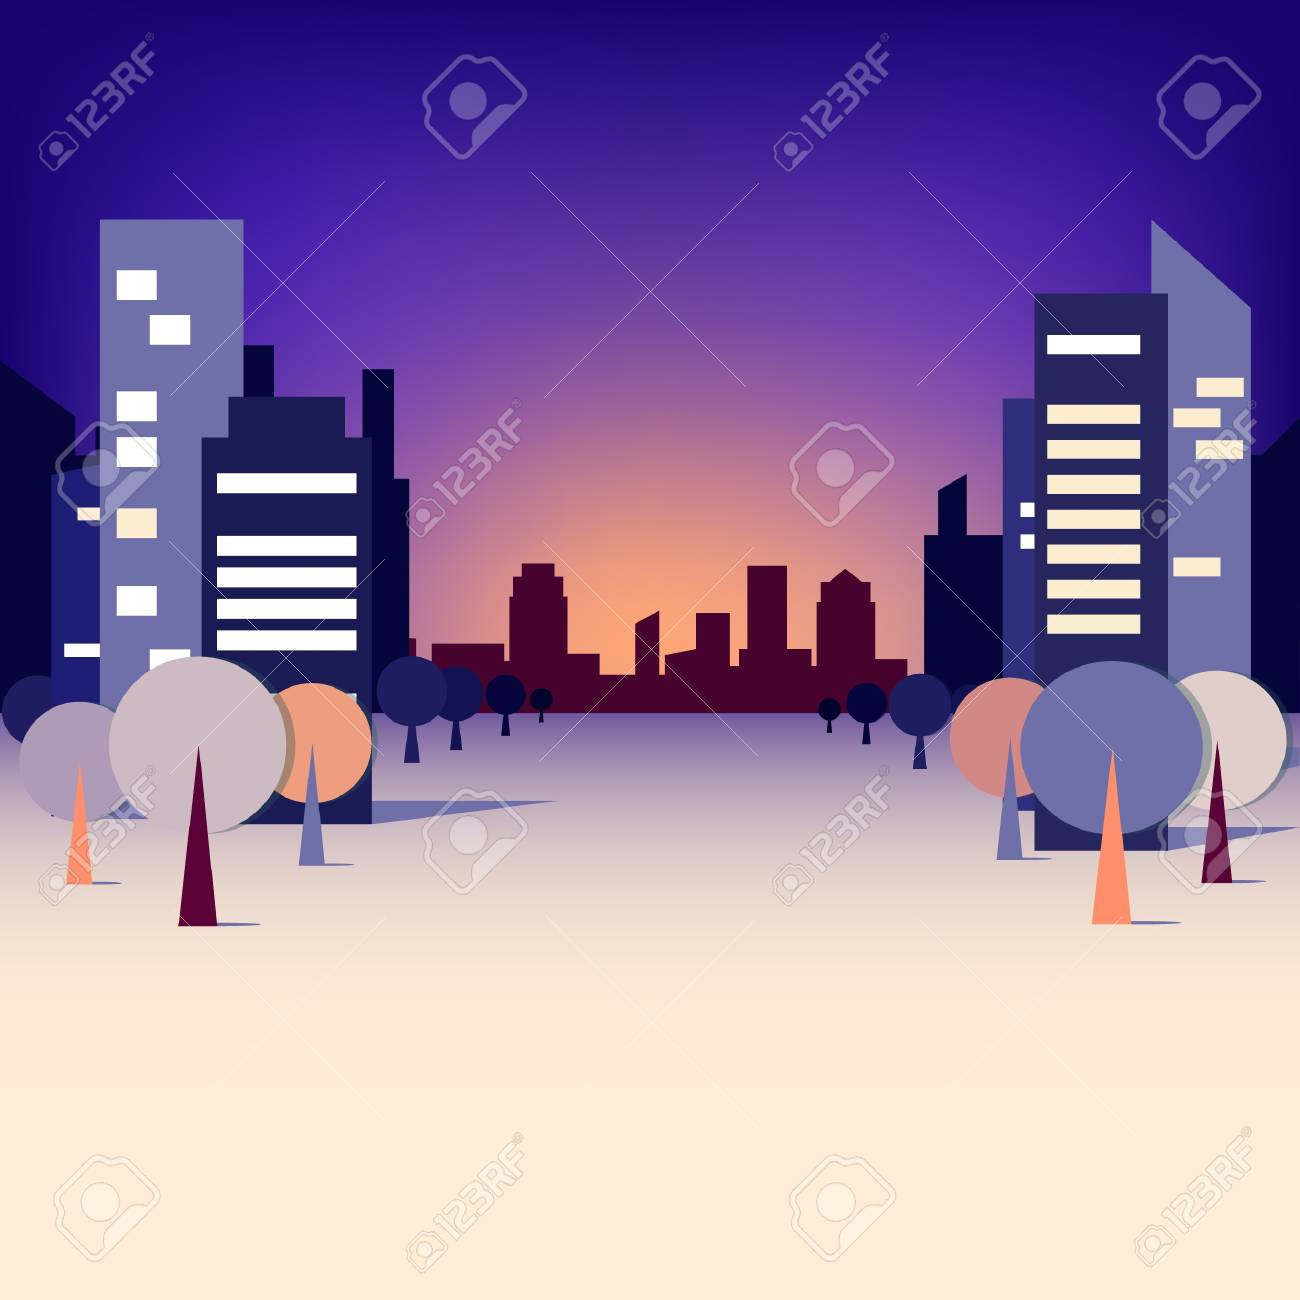 City landscape with trees and skyscrapers Stock Vector - 18787016